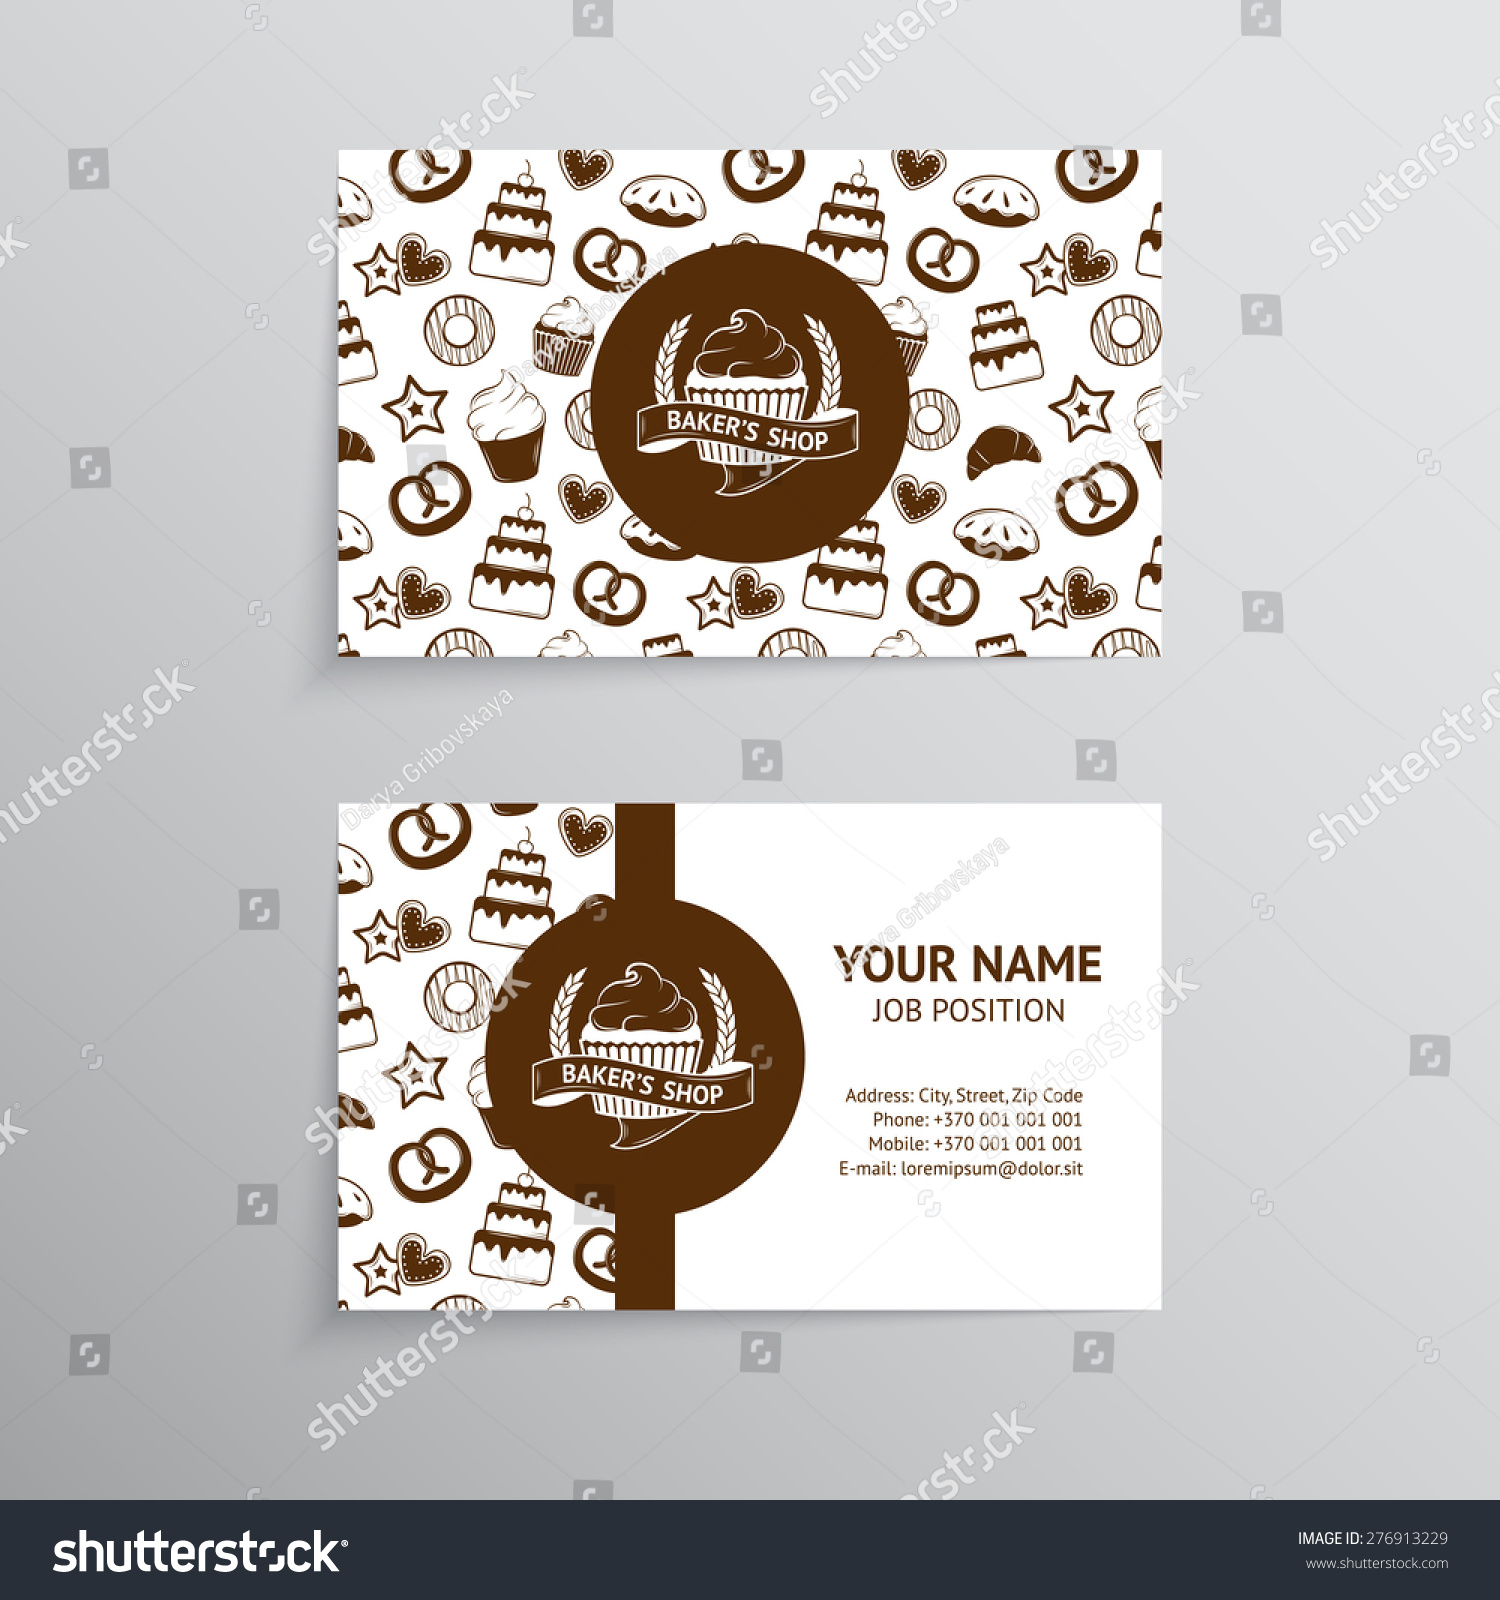 Vector Vintage Business Card Design Template Stock Vector 276913229 ...